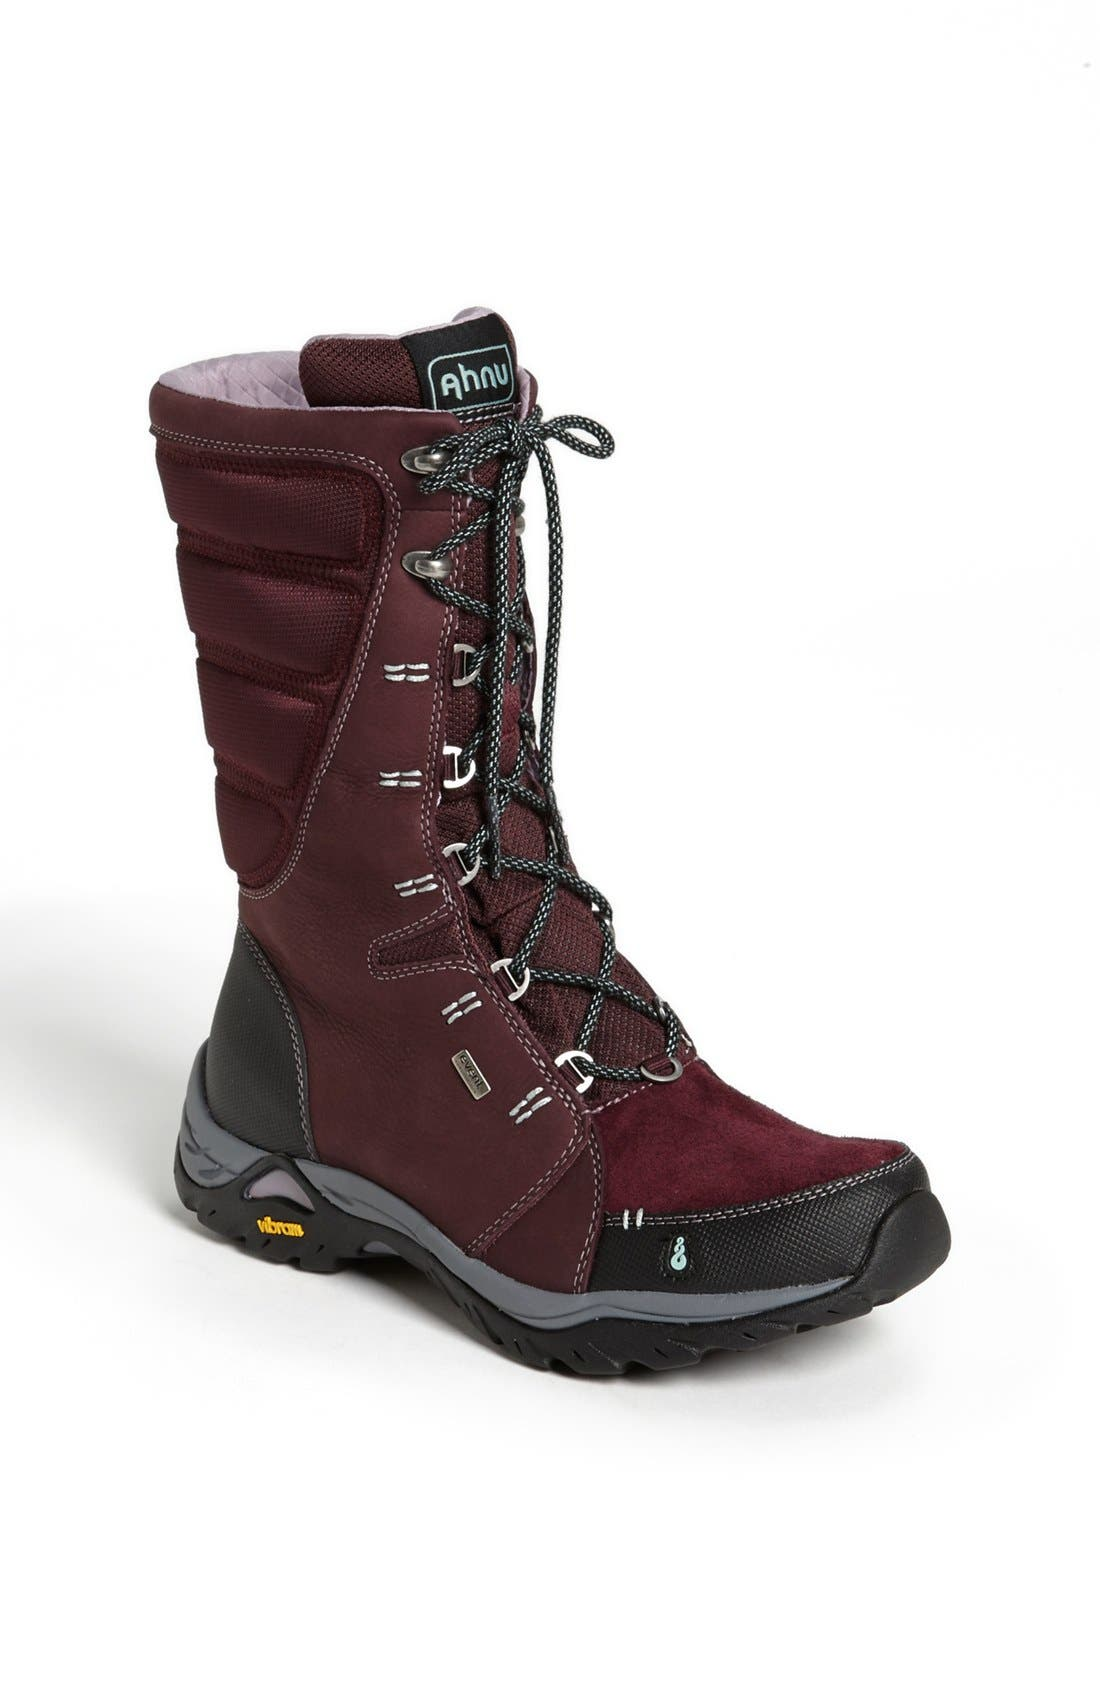 Main Image - Ahnu 'Northridge' Boot